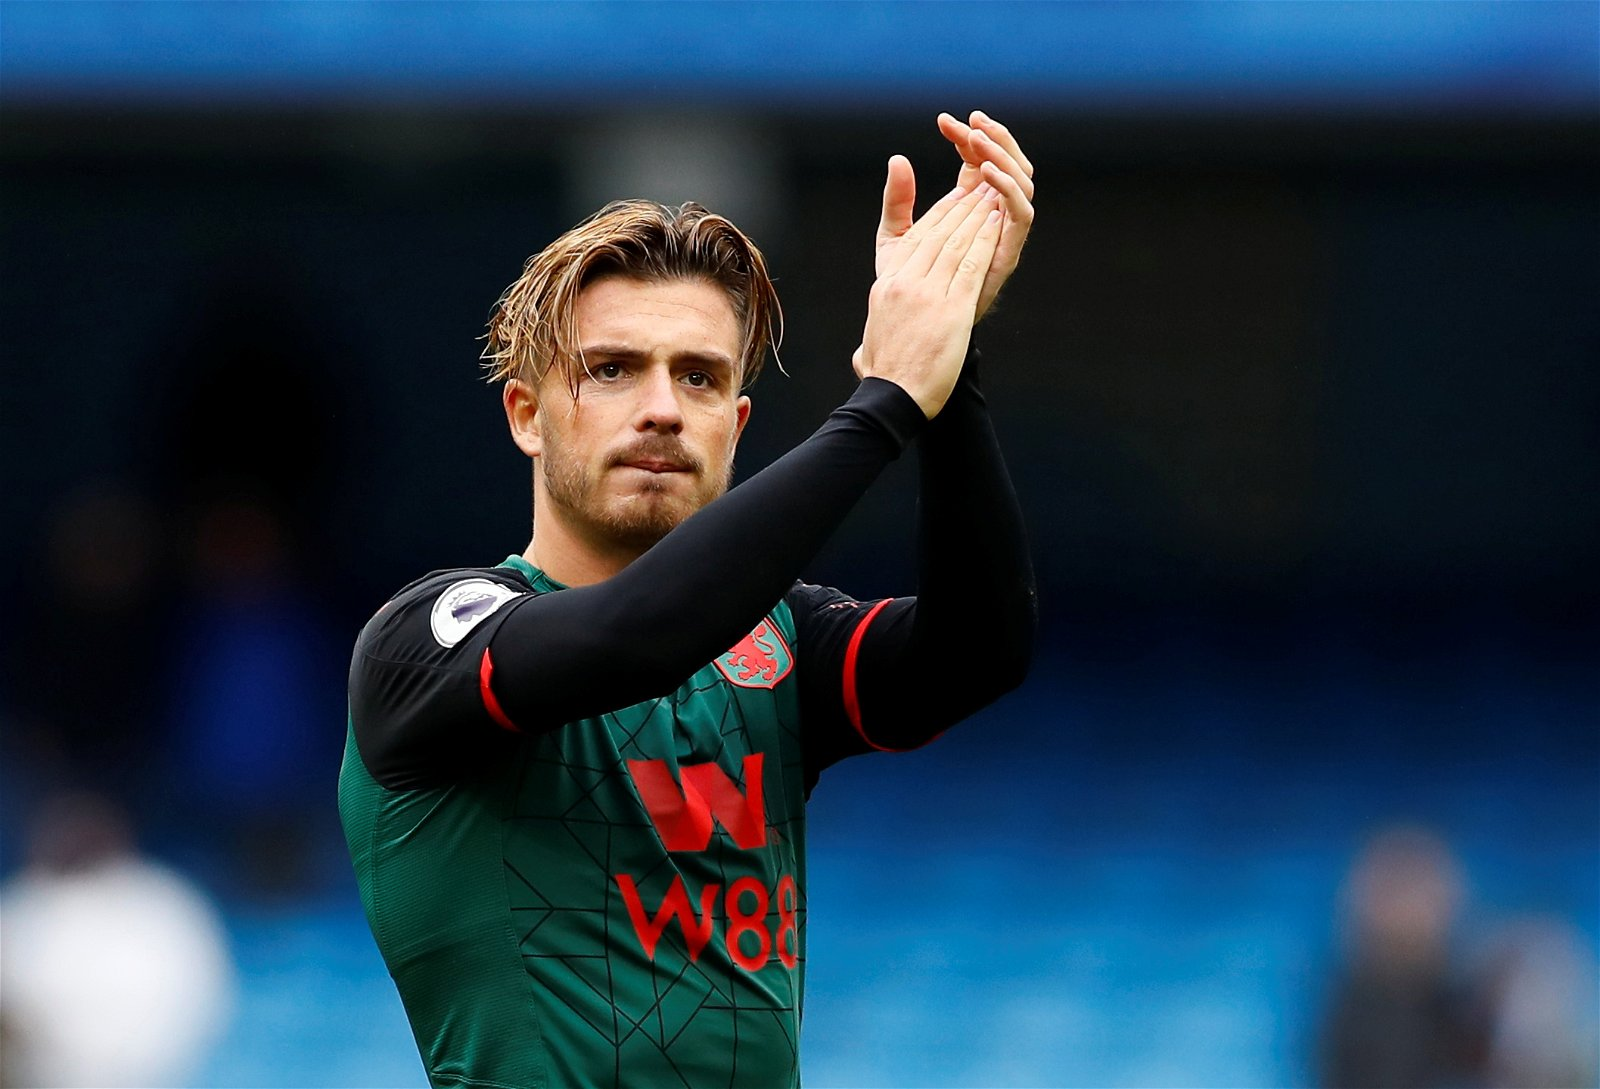 Grealish could leave bitter taste for Man City in EFL Cup